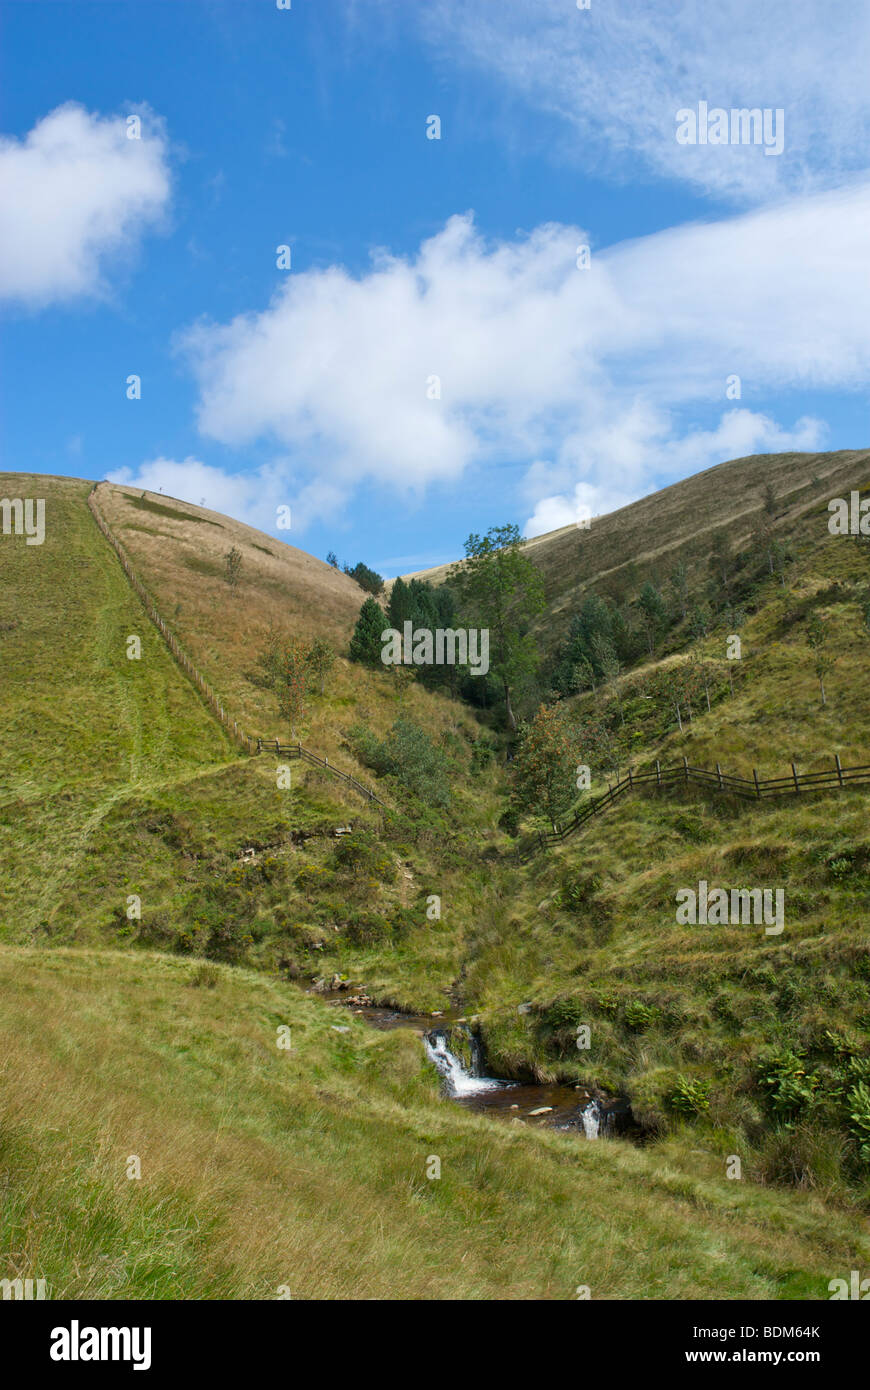 View of Kinder Scout from Jacob's Ladder, on Pennine Way near Edale, Peak National Park, Derbyshire, England - Stock Image